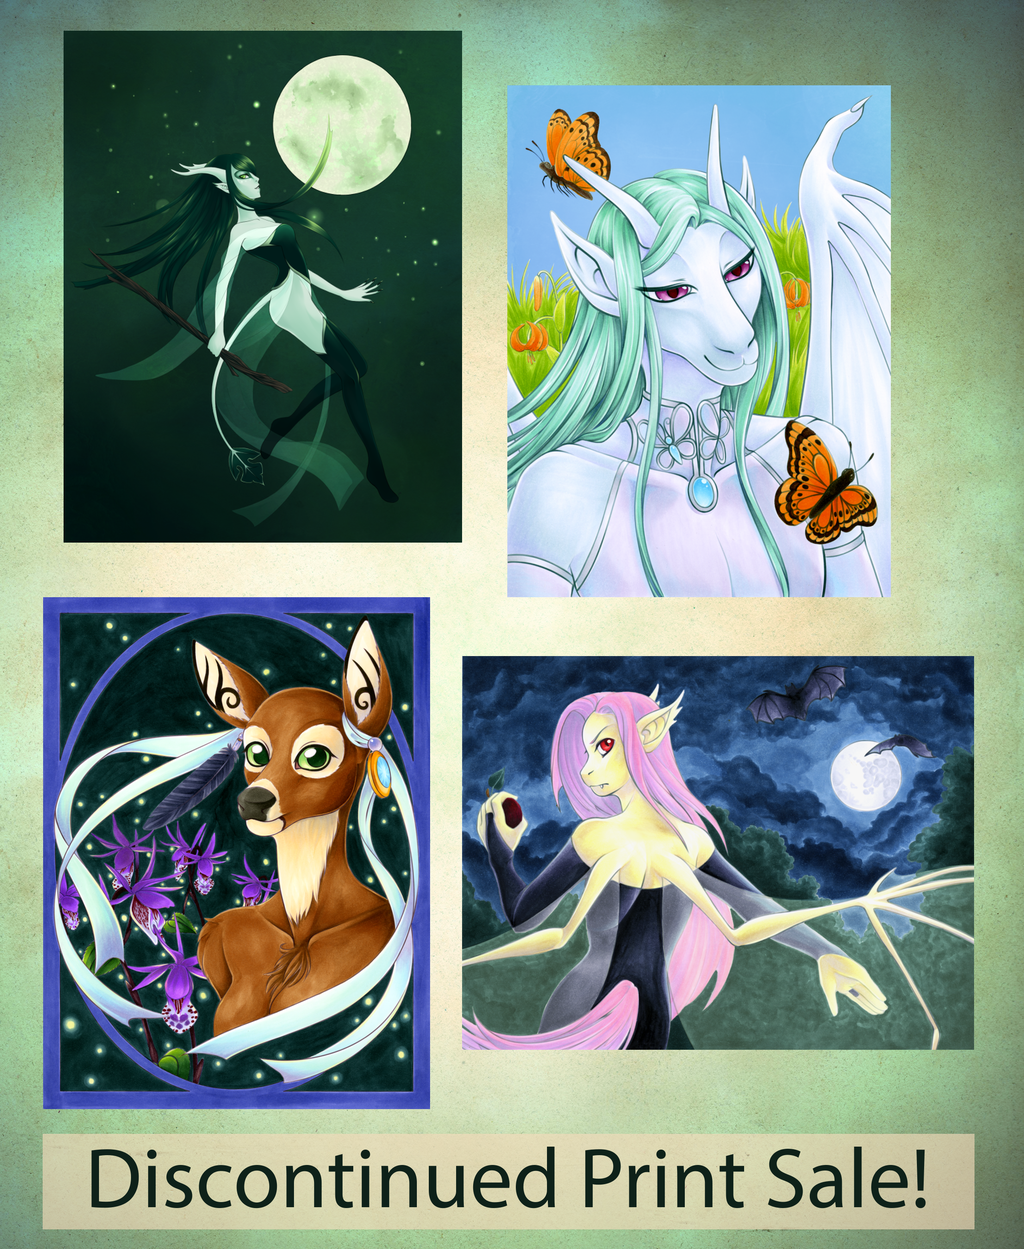 Featured image: Discontinued Print Sale!